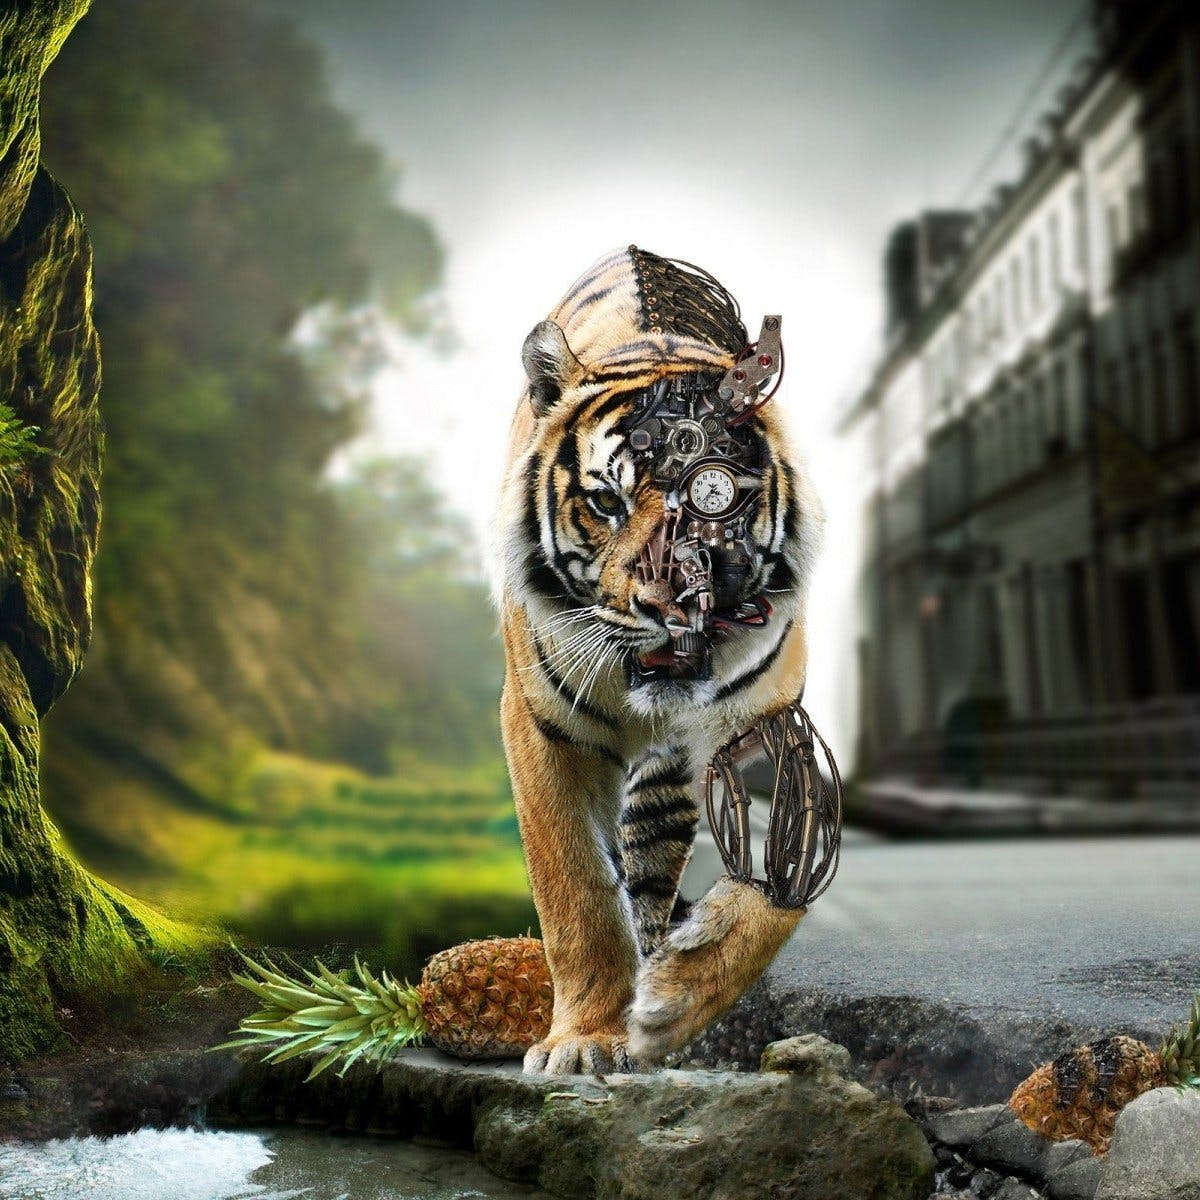 Wallpaper tiger robot robots wallpapers background large photo sxhxx5nieg